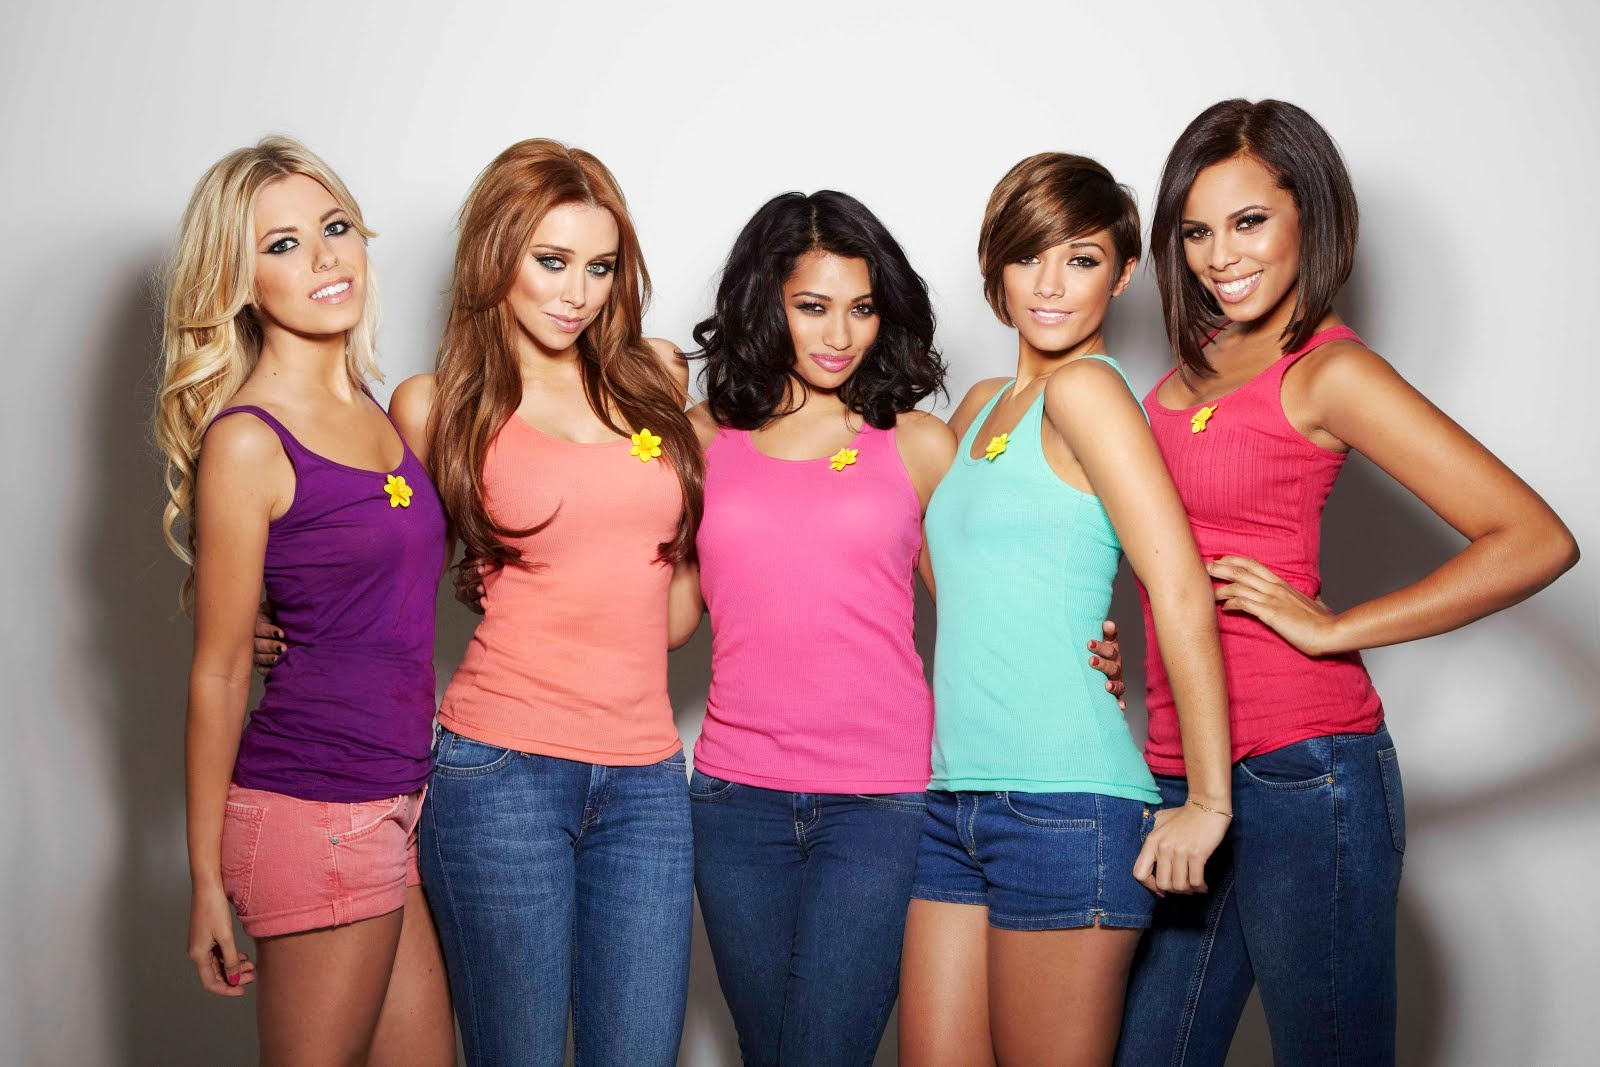 Iphone 5 Wallpaper For Girls The Saturdays Hollywood Actors